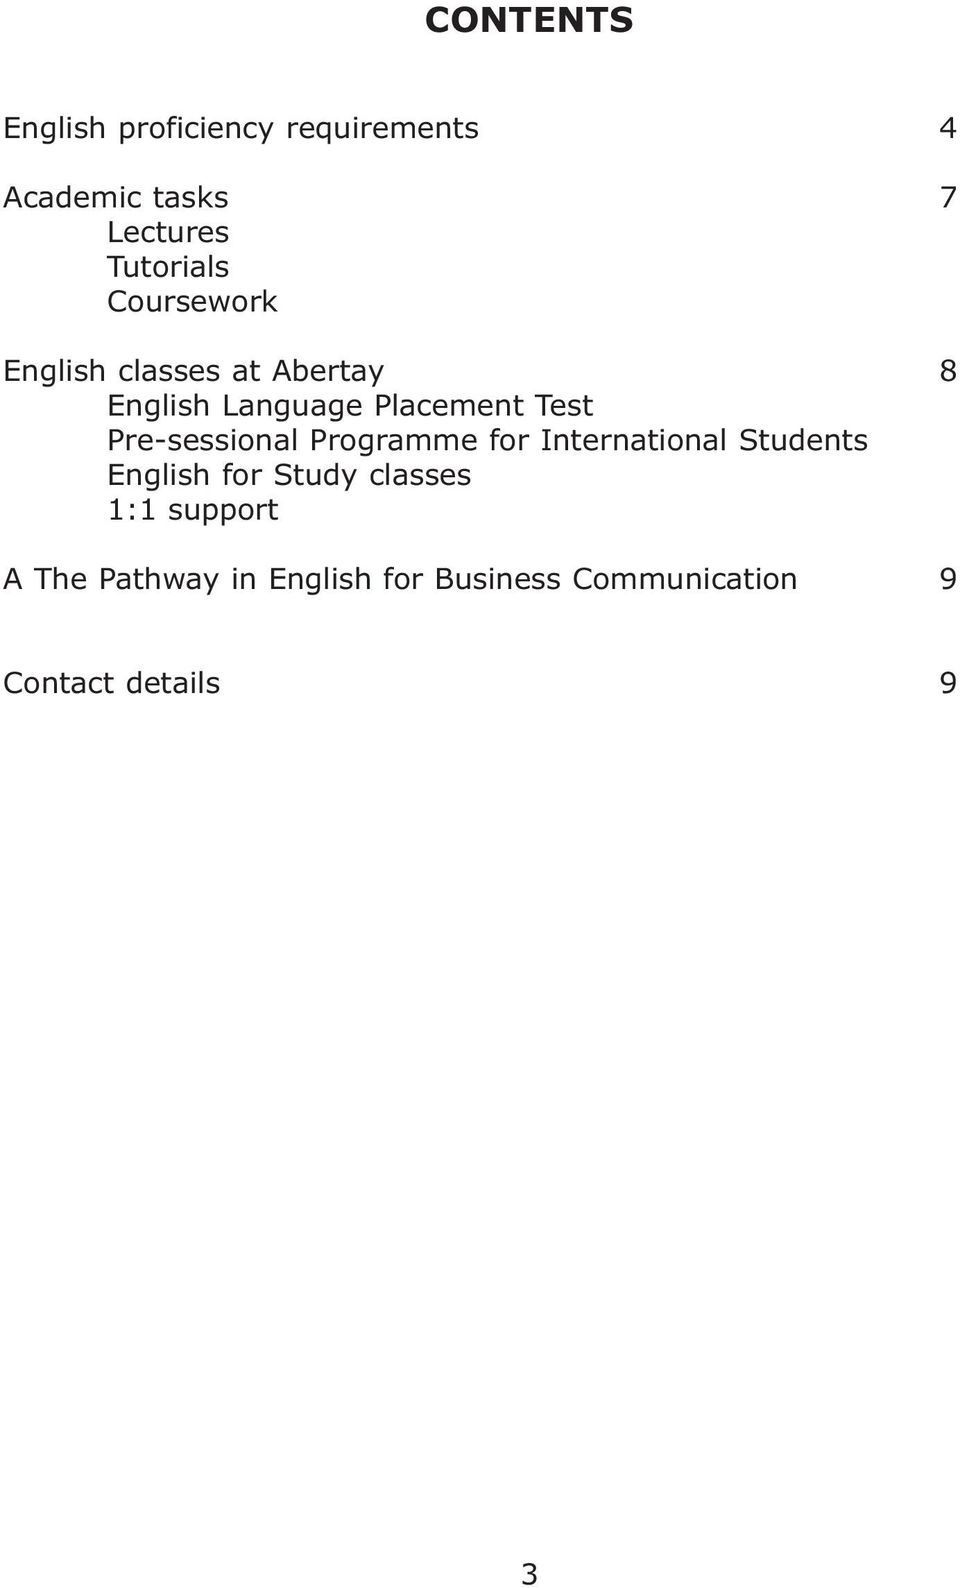 Test Pre-sessional Programme for International Students English for Study